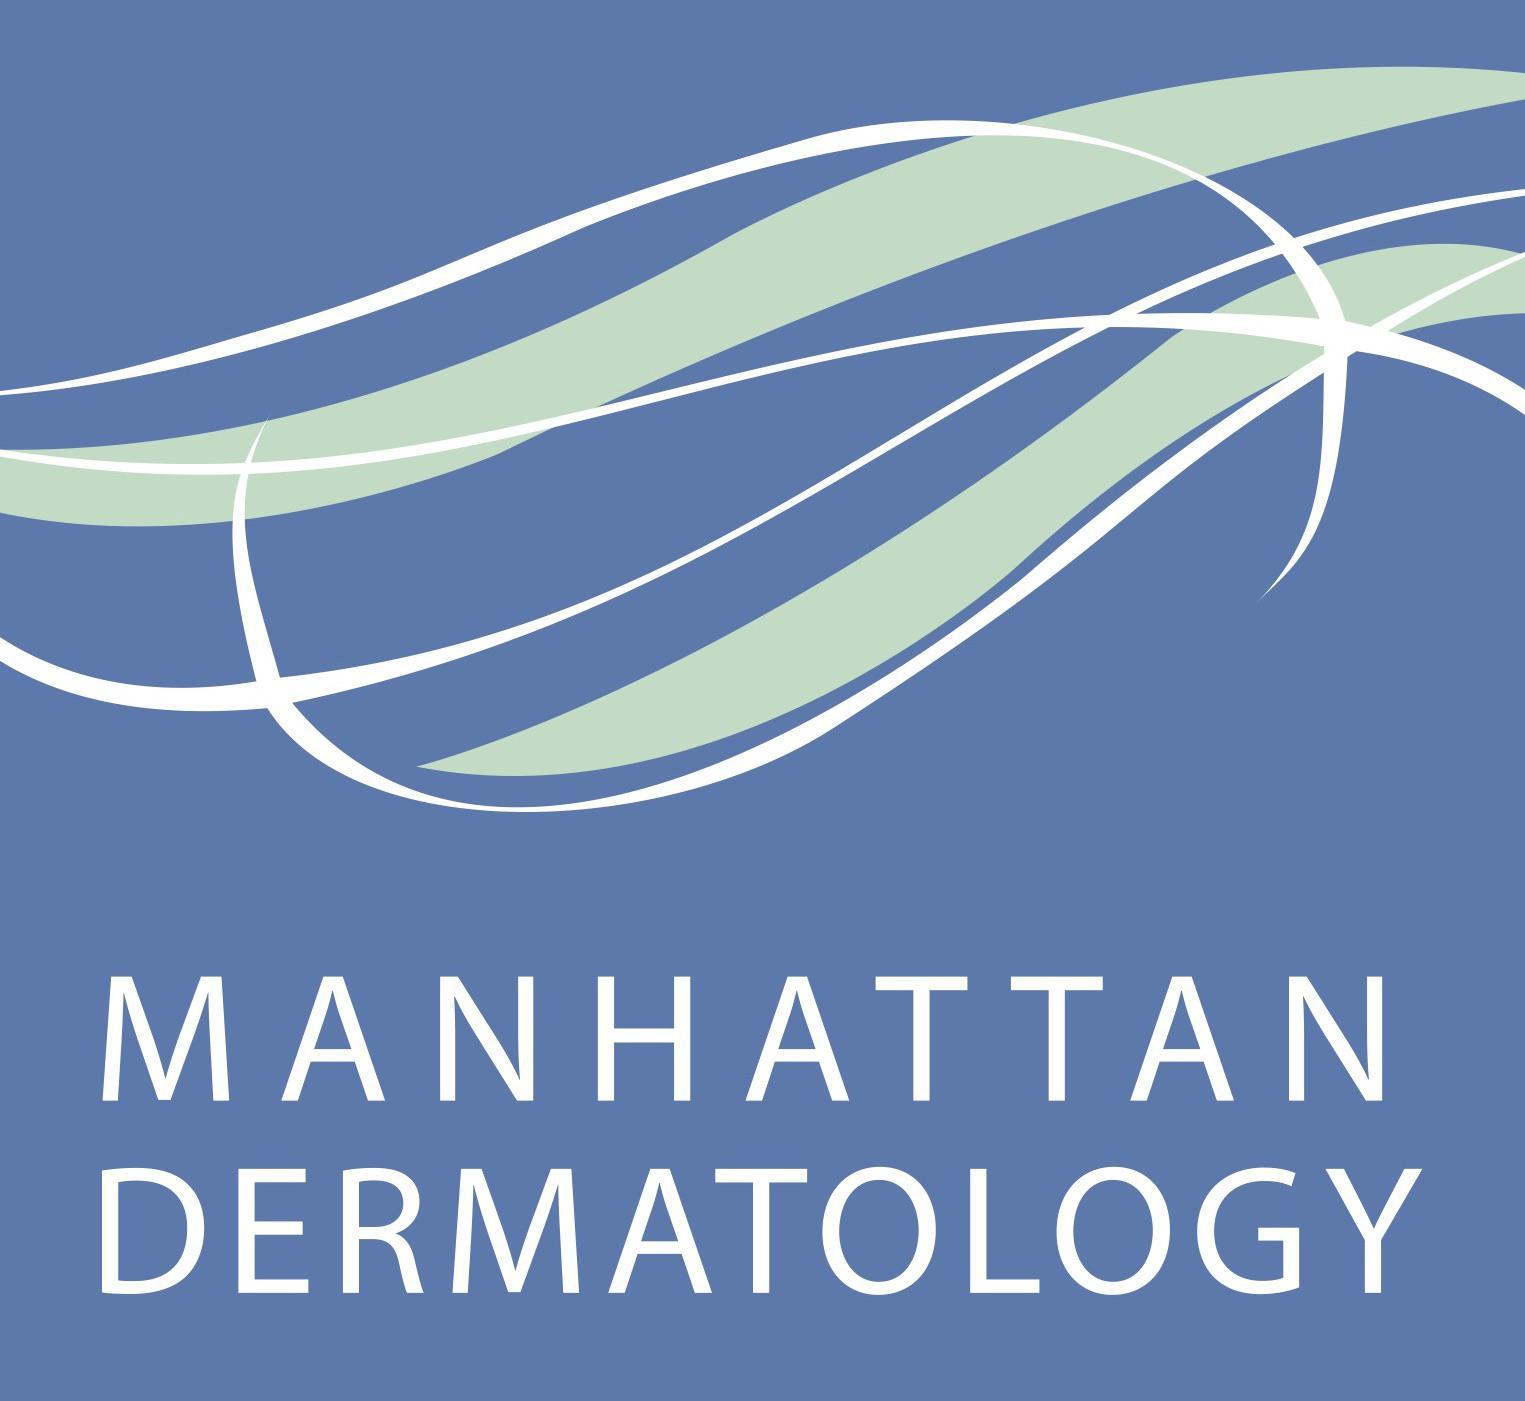 Manhattan Dermatology logo